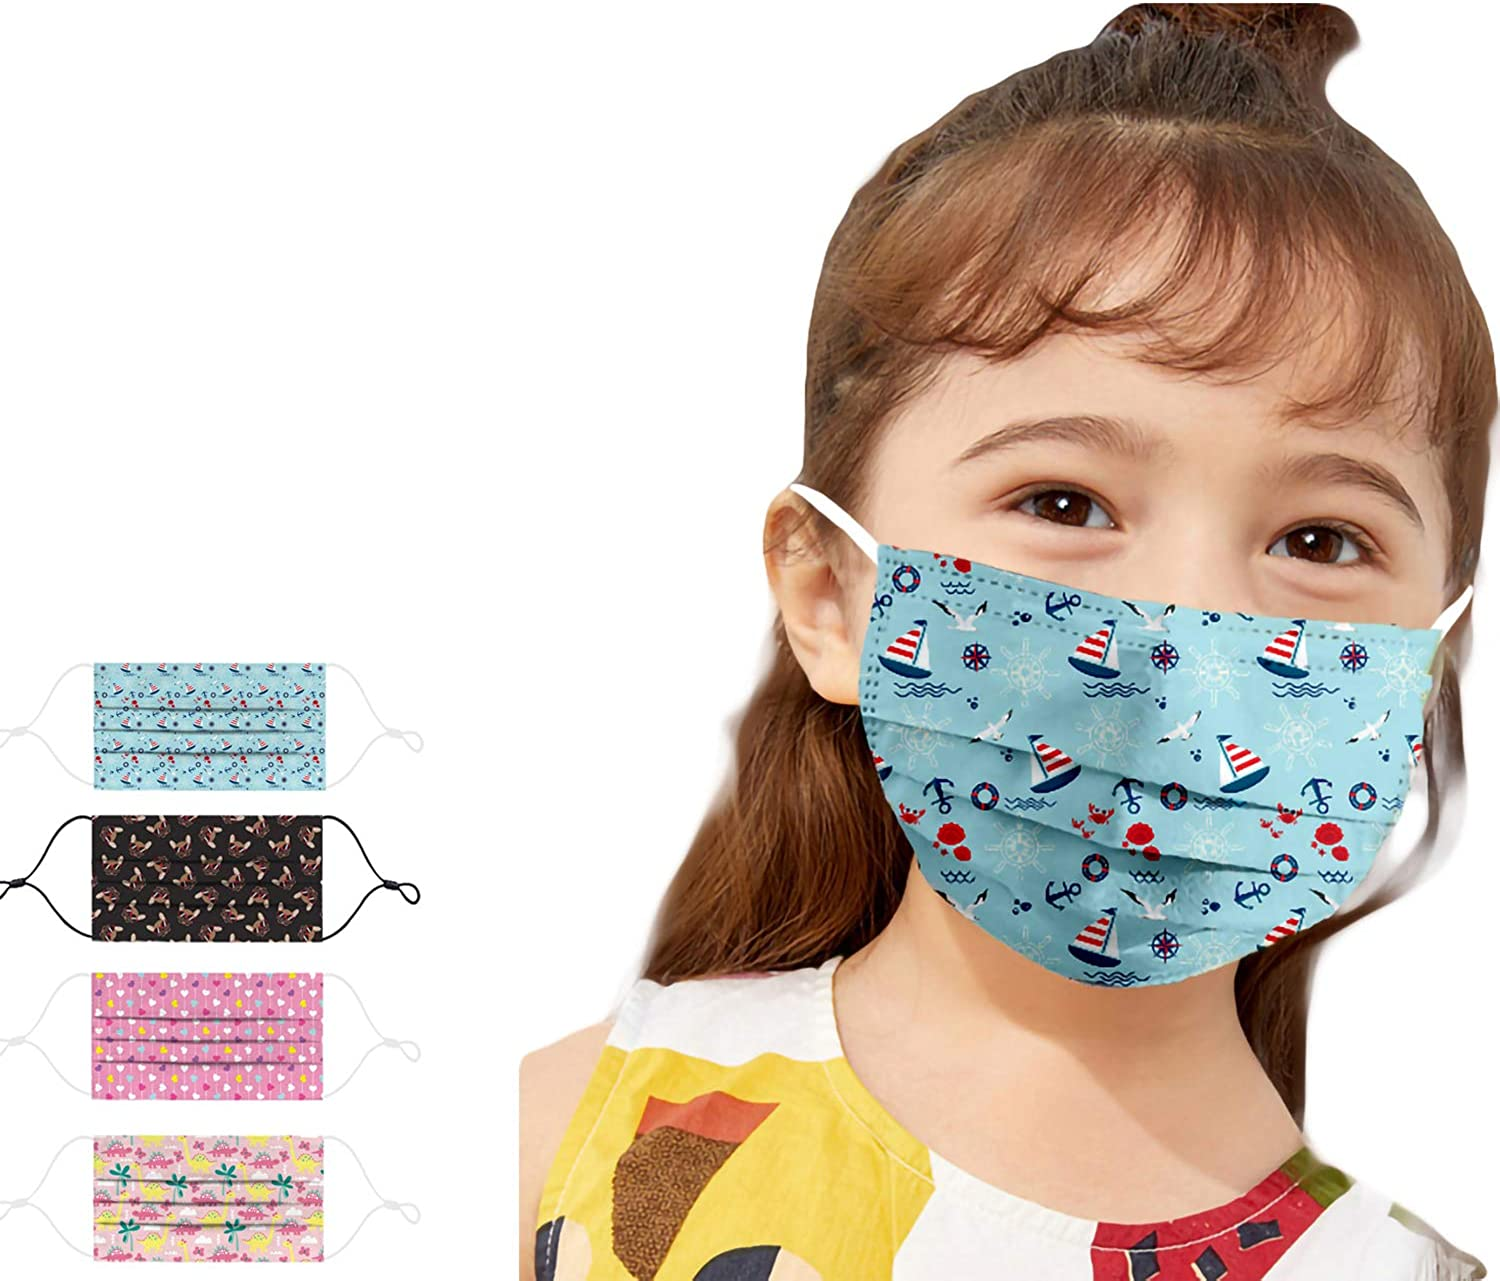 Kaideny 5 Pack Kids Adjustable Washable Reusable Face Protective Bandanas Childrens Boys Girls Travel Indoor Outdoor School